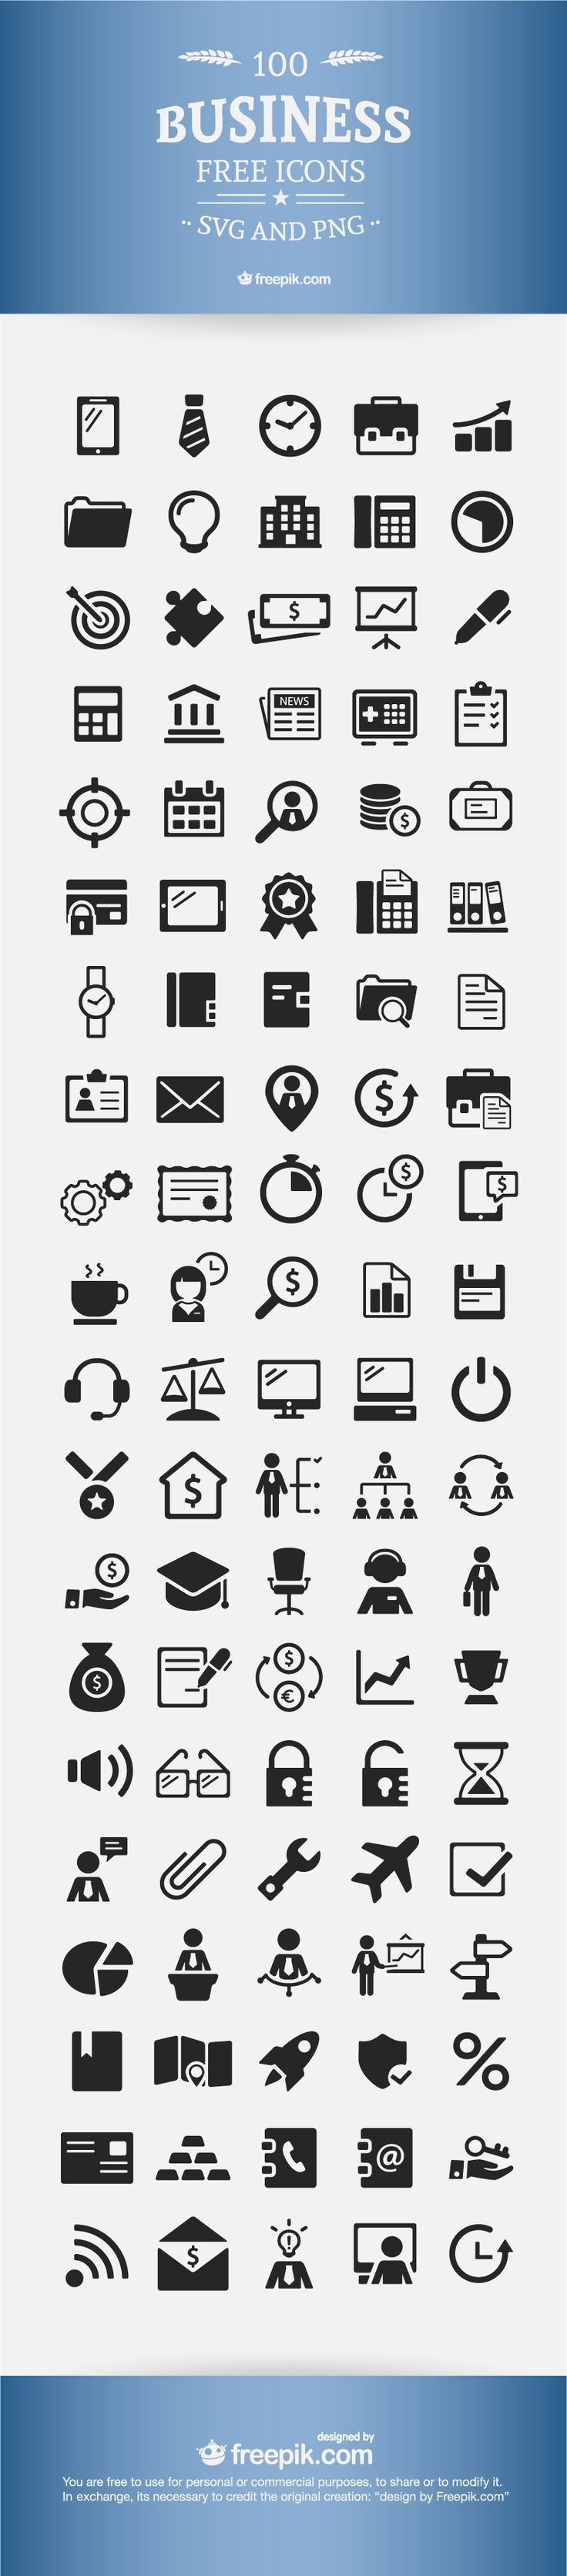 100 free business icons - 100 Free Resume Templates